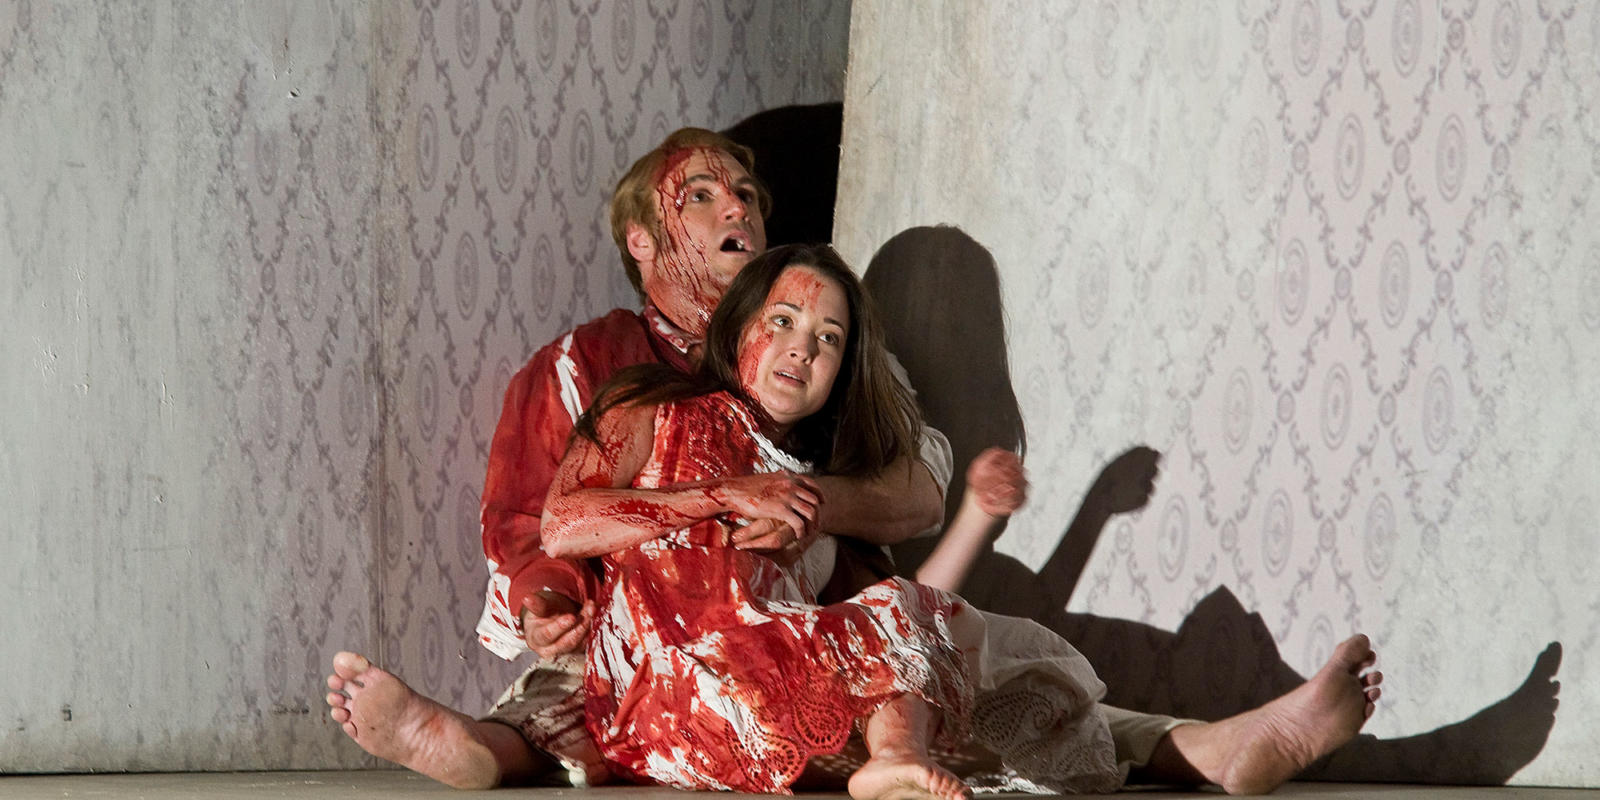 ENO Lucia di Lammermoor Anna Christy and Dwayne Jones (c) Robert Workman